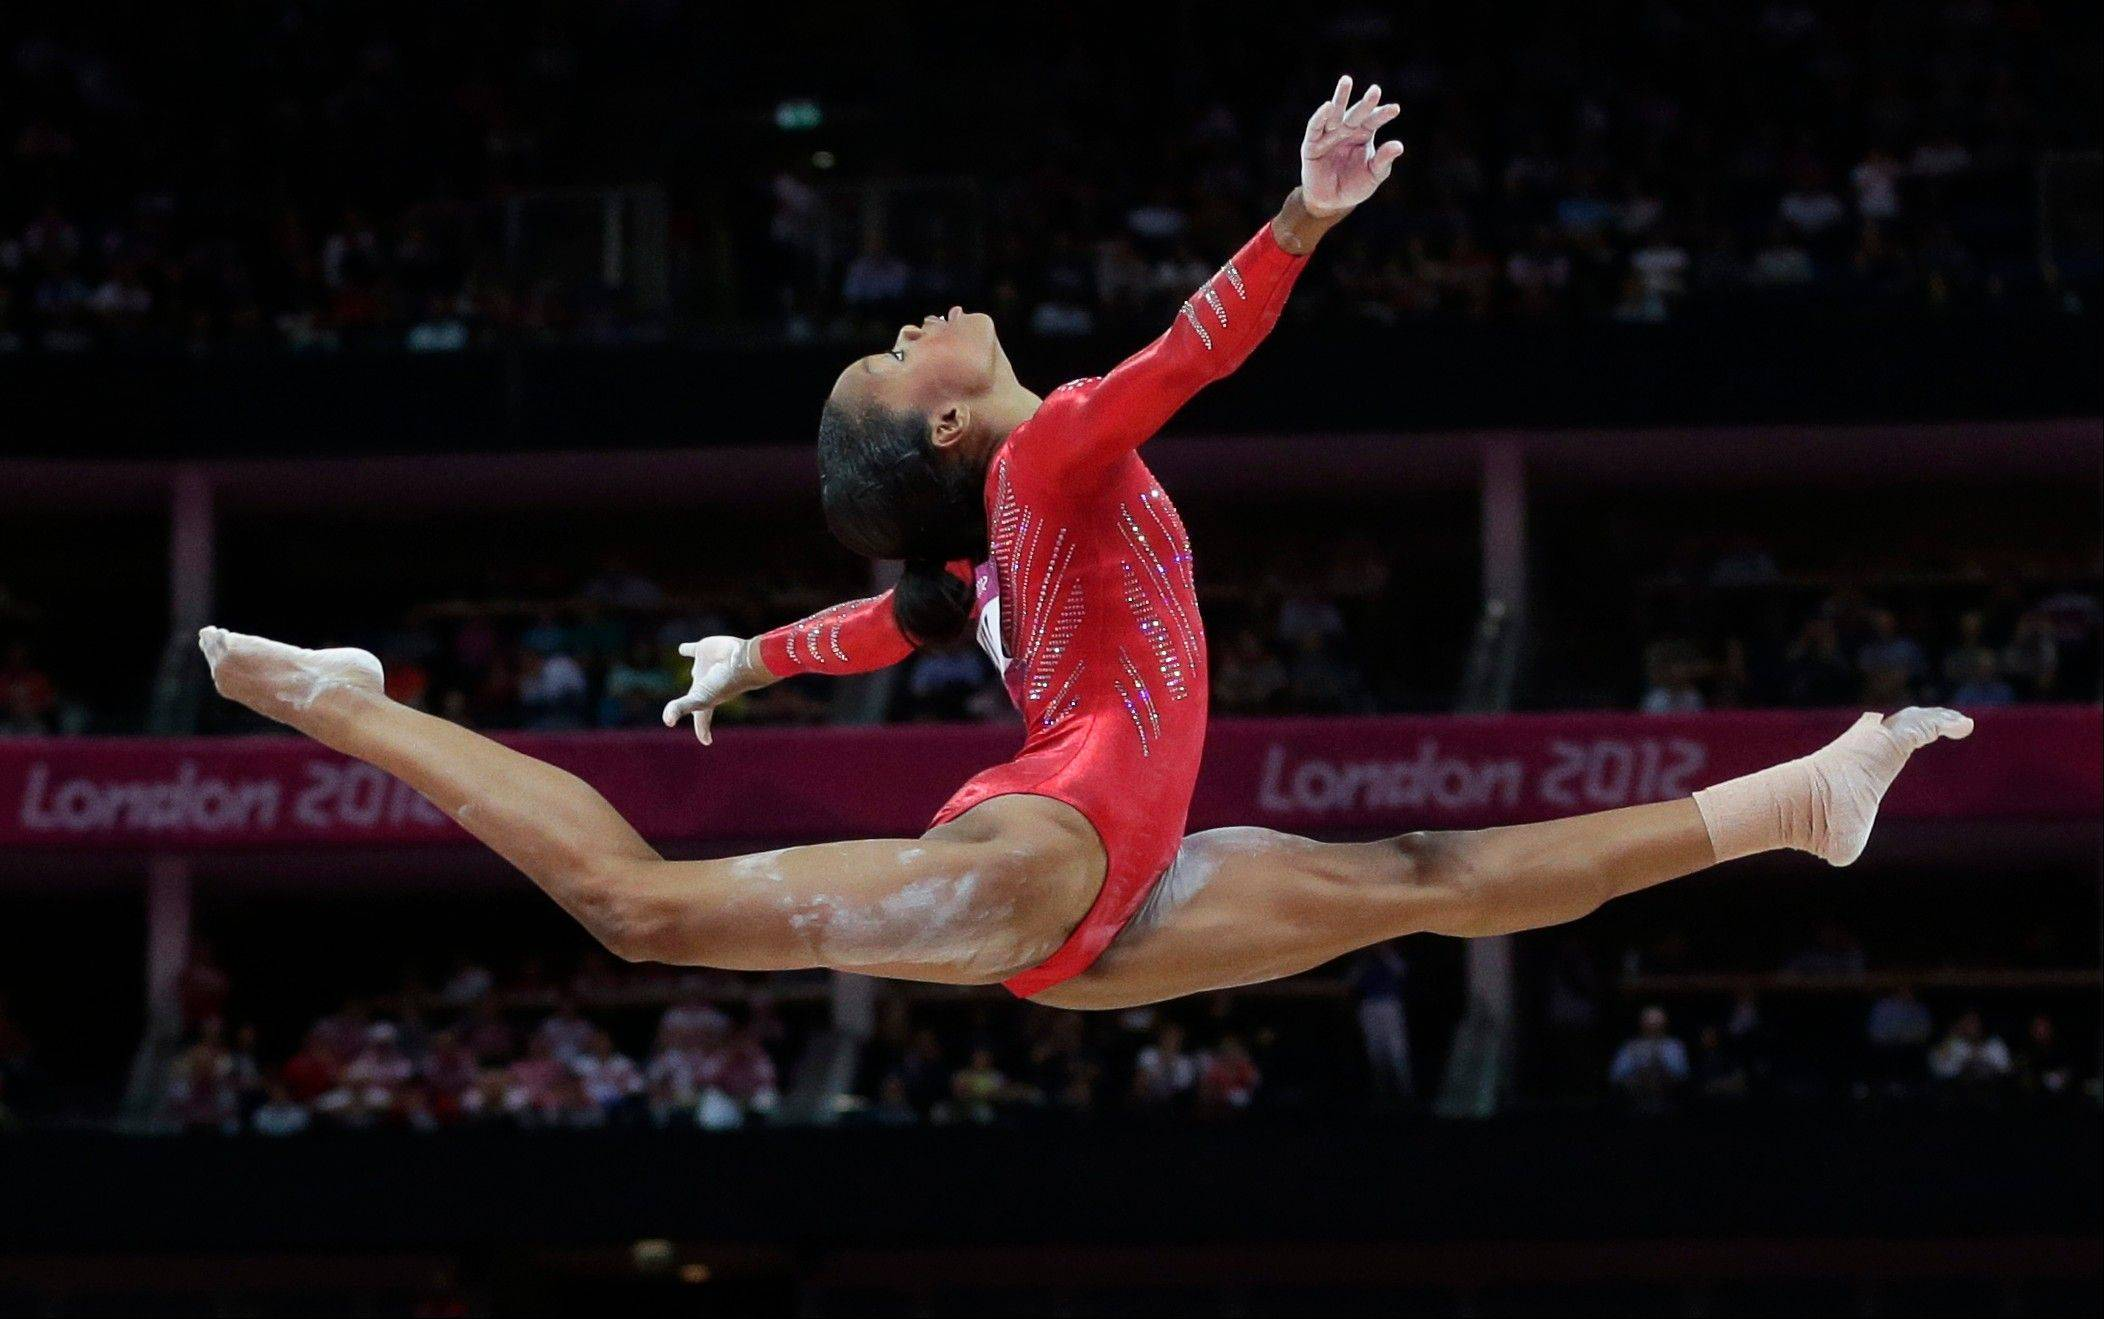 U.S. gymnast Gabrielle Douglas performs on the balance beam during the Artistic Gymnastics women's team final at the 2012 Summer Olympics,